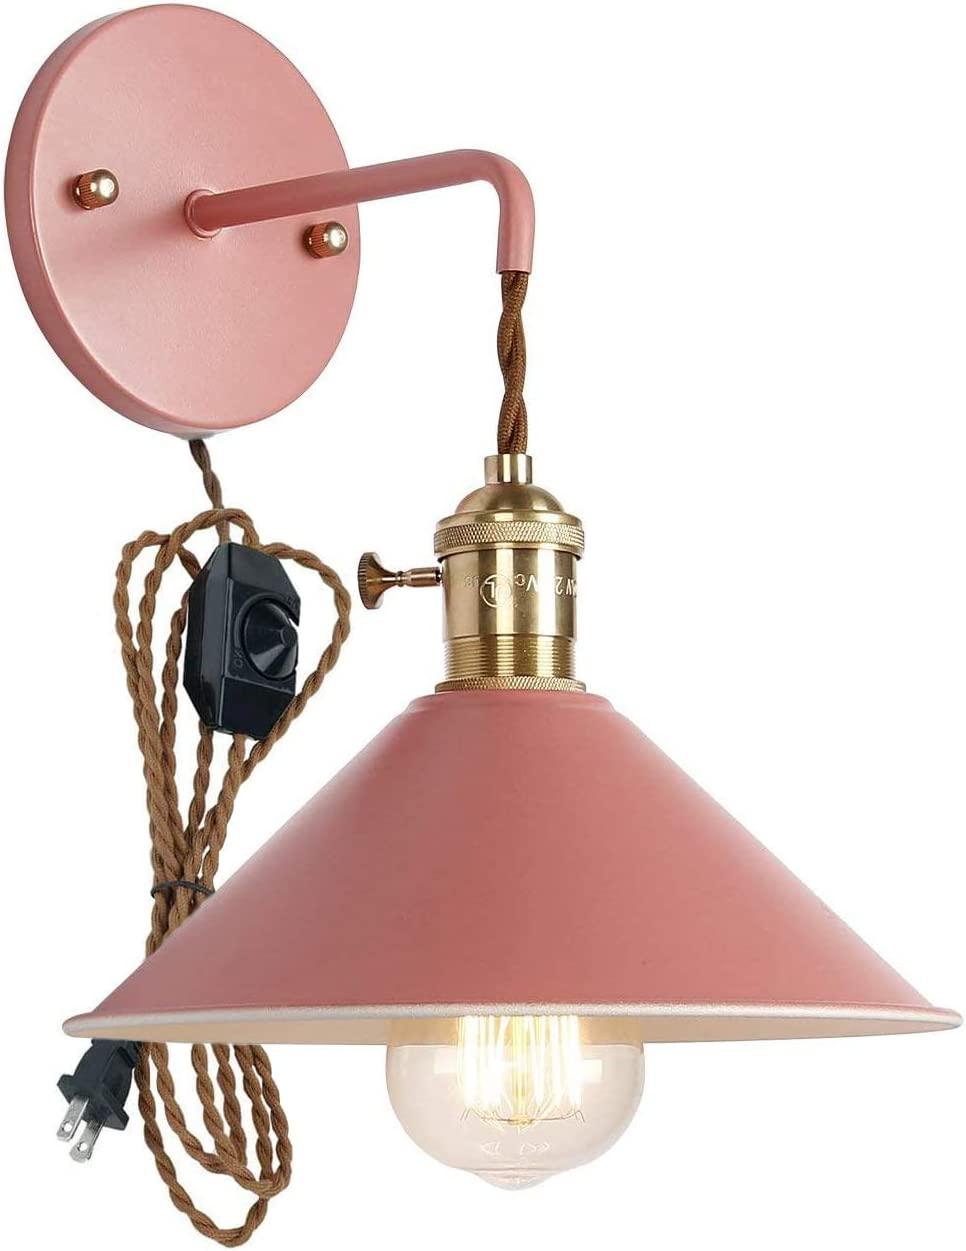 Plug In Dimmable Wall Sconce Lamps Lighting Fixture Within Line Cord Dimmer Switch Pink Macaron Wall Lamp E26 Edison Copper Lamp Holder With Frosted Paint Body Bedside Lamp Bathroom Vanity Lights